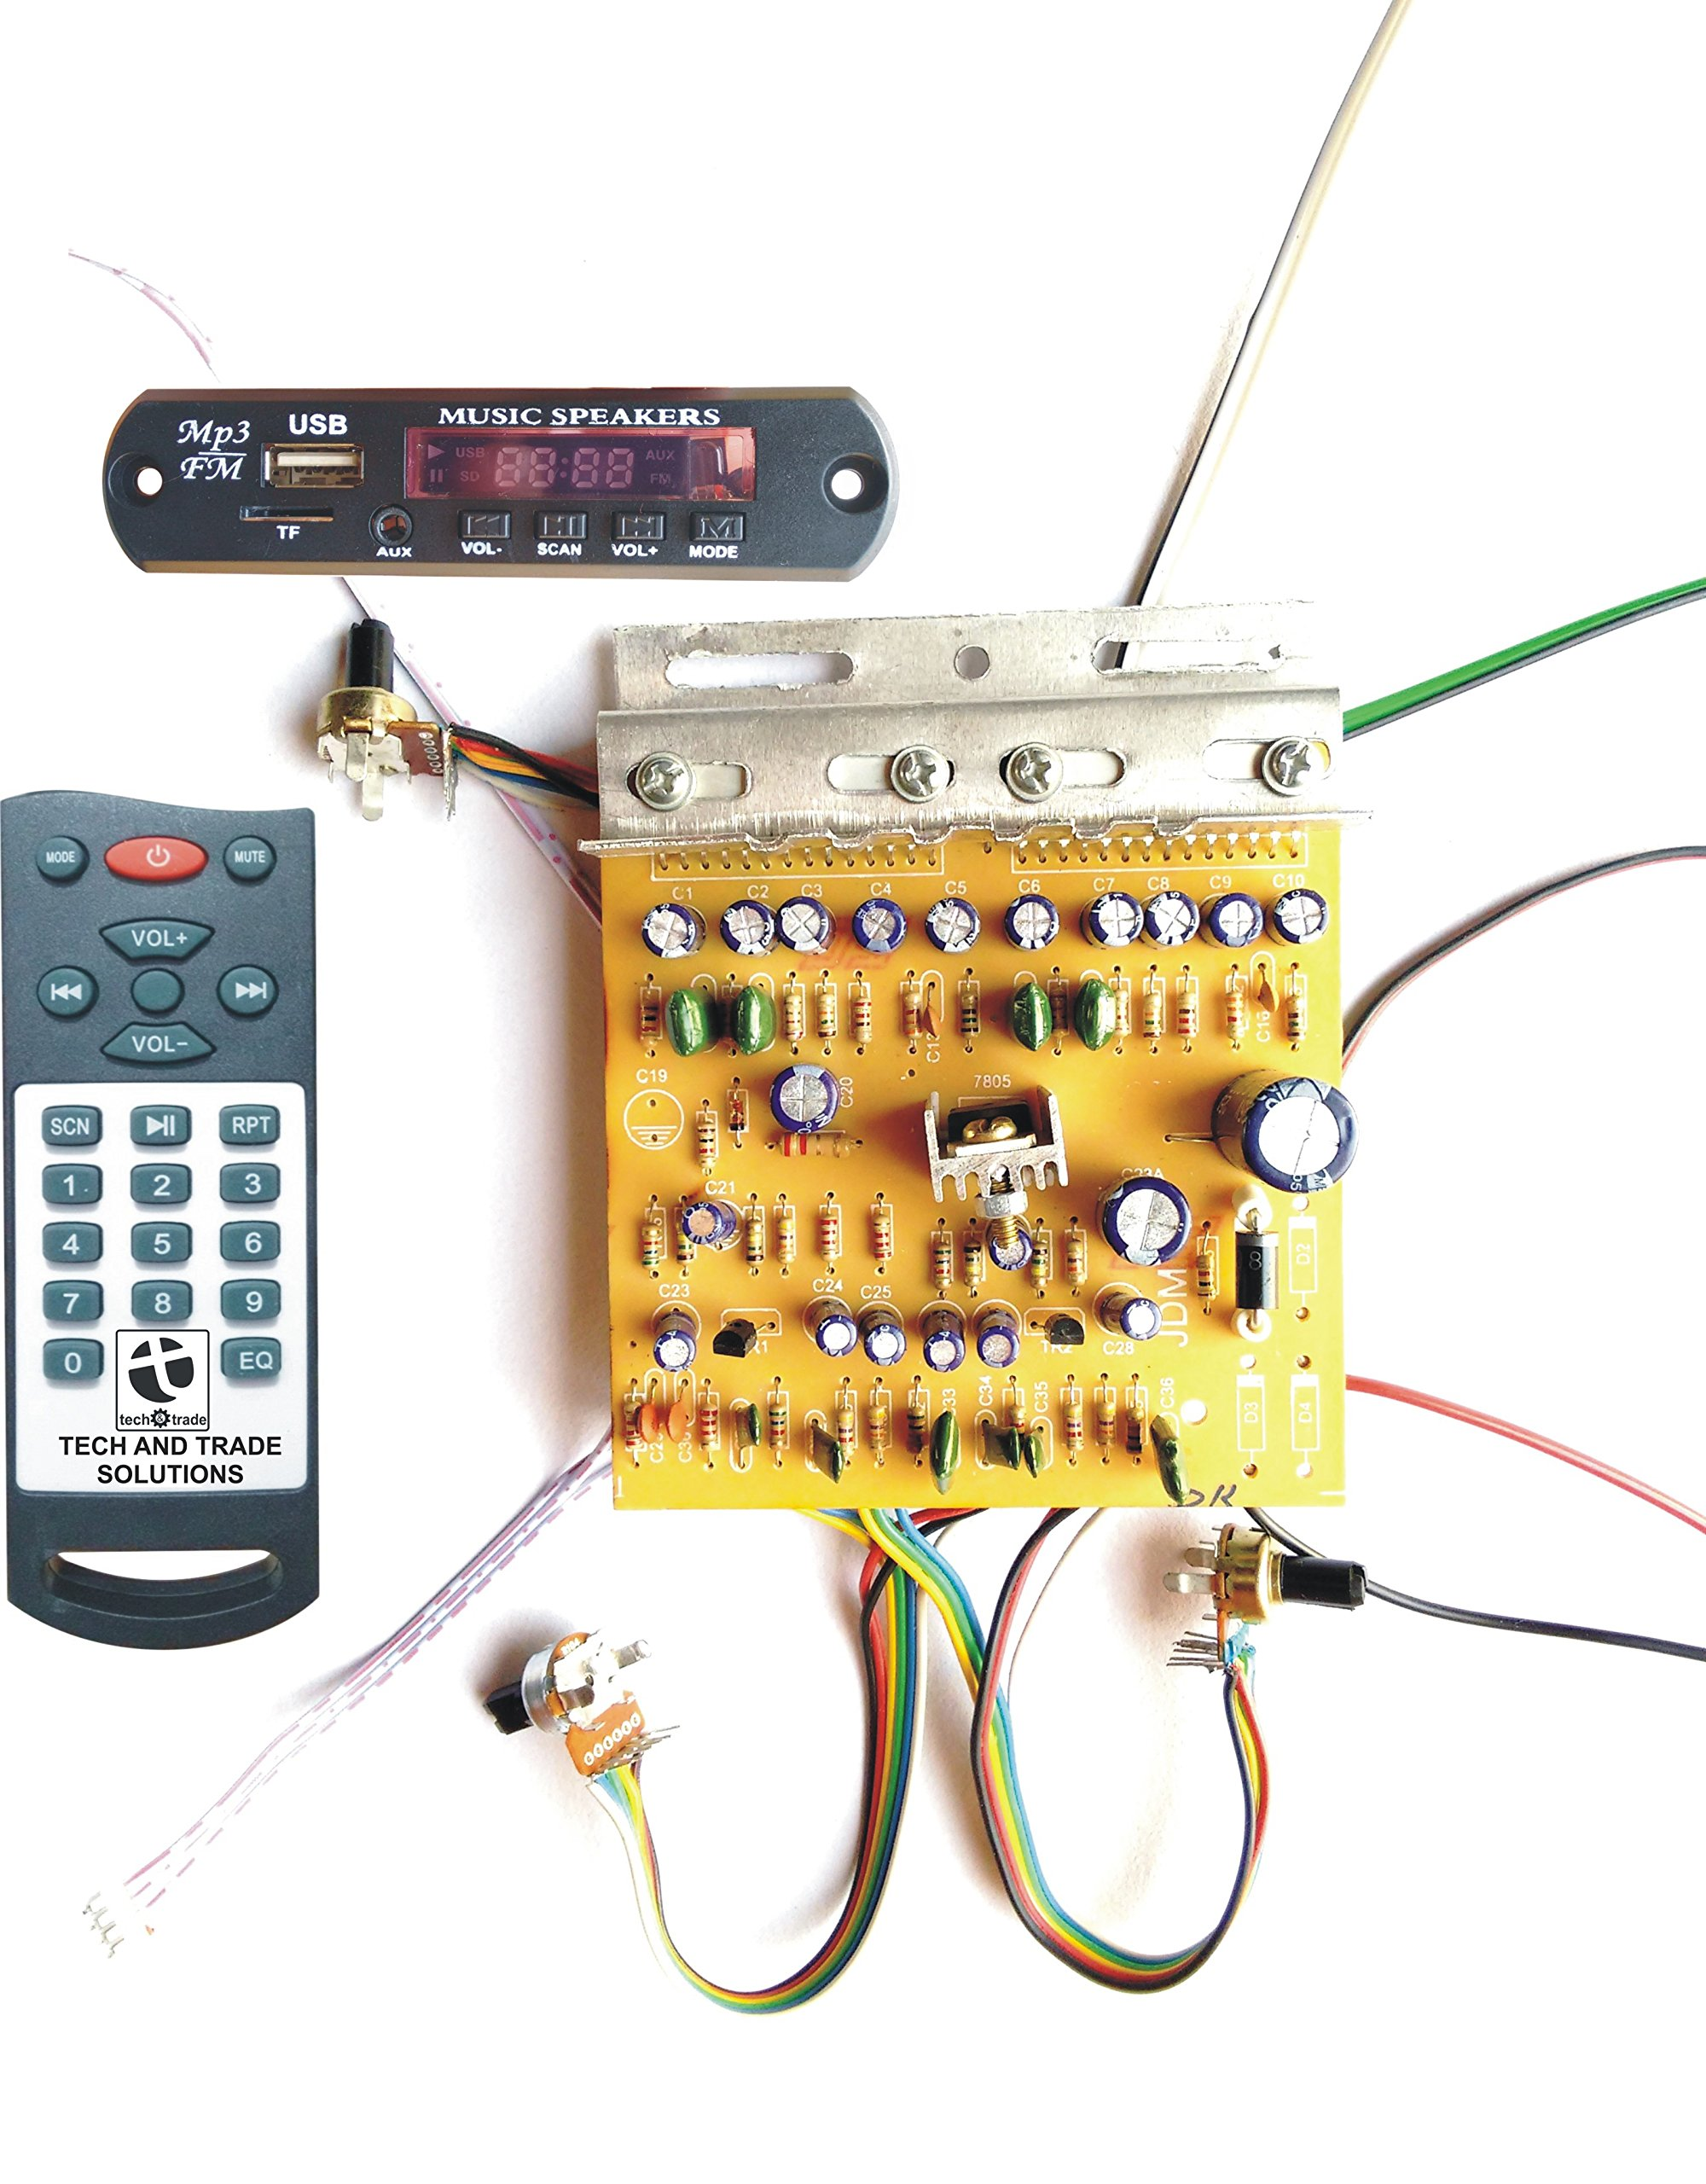 Small Audio Lifier Circuit Uv Block Schematic Diagram Tv 43 Bar Type Booster Amplifier Board Kit Buy Online At Best Prices